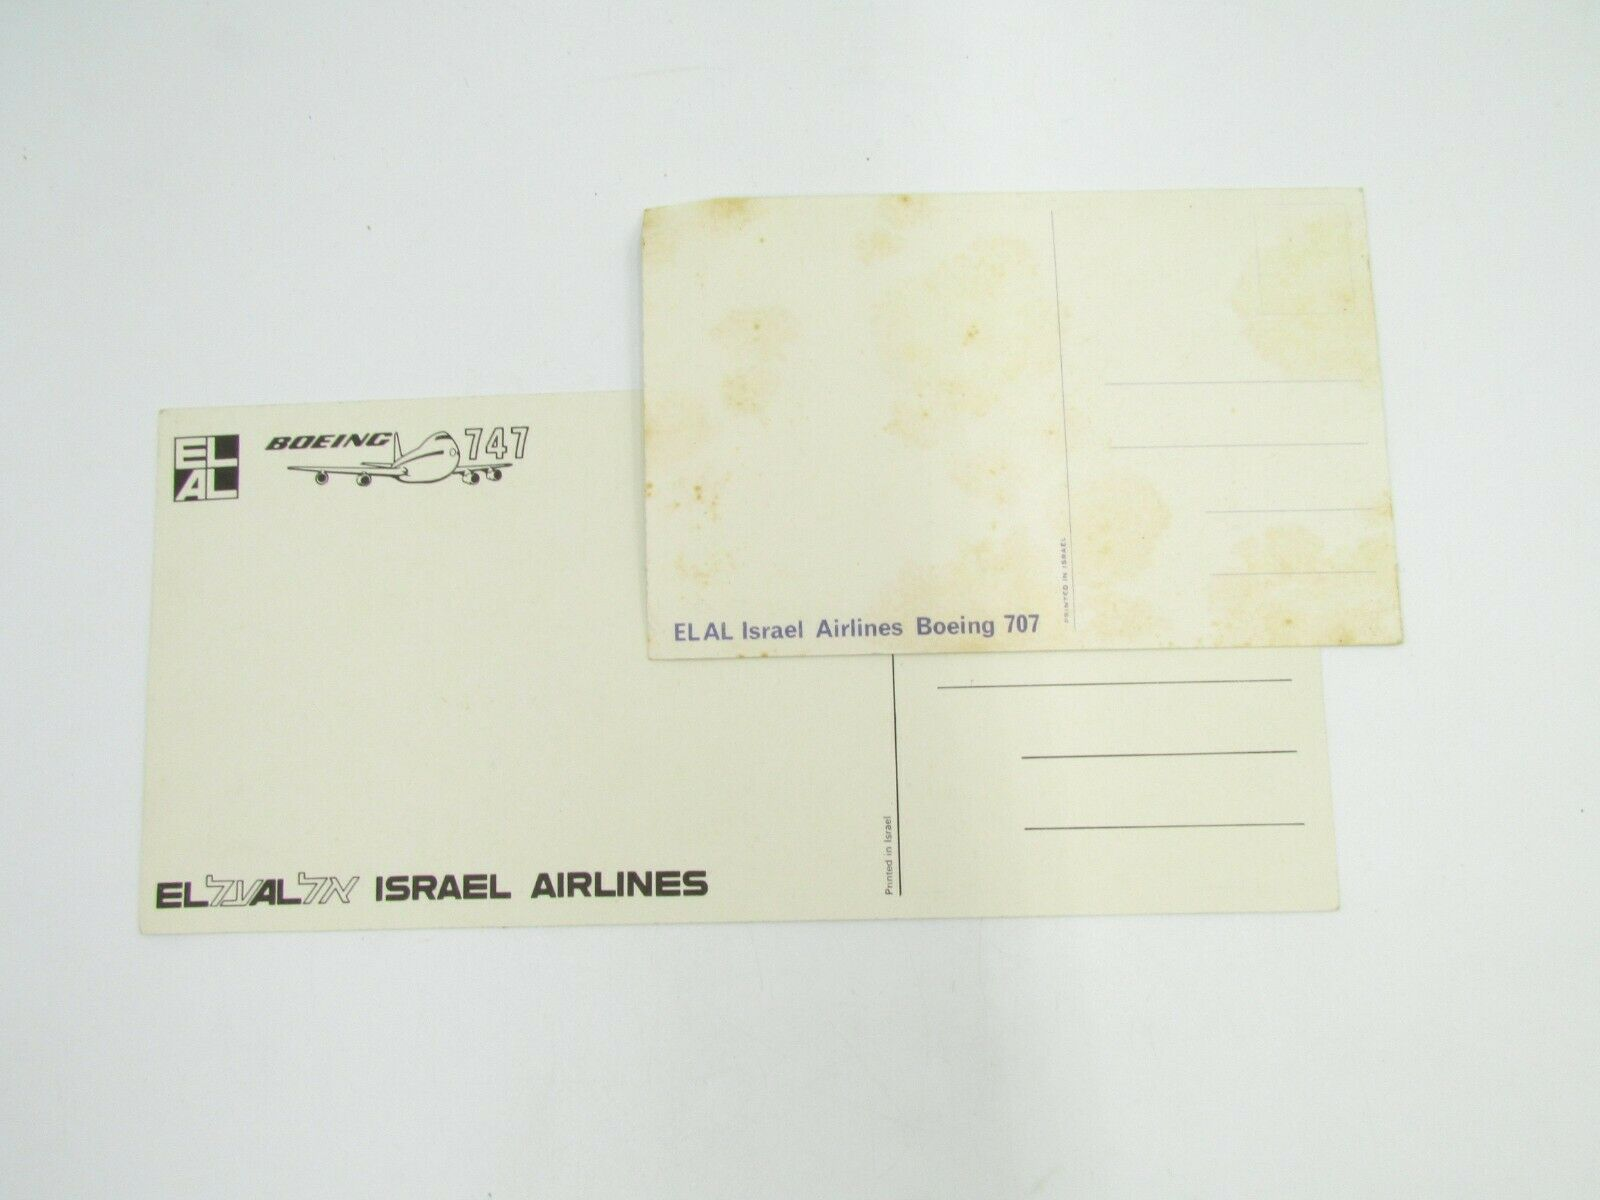 Vintage Airlines 7 Postcards Lot KLM Lufthansa EL-AL Delta Aircrafts Без бренда - фотография #6